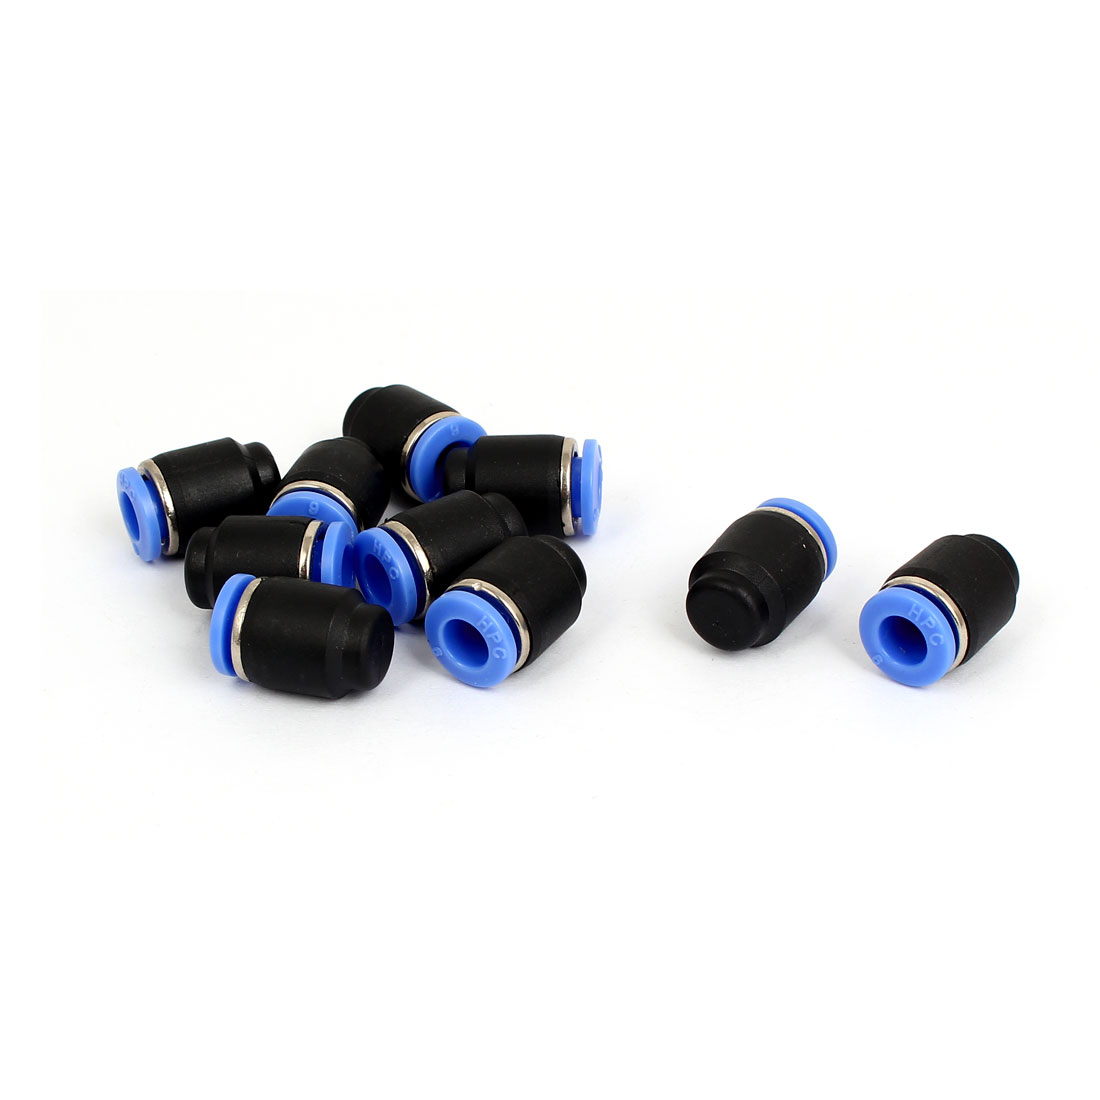 6mm Dia 1 Way Push in to Connect Tubing Plastic Quick Cap Plug Fitting 10pcs